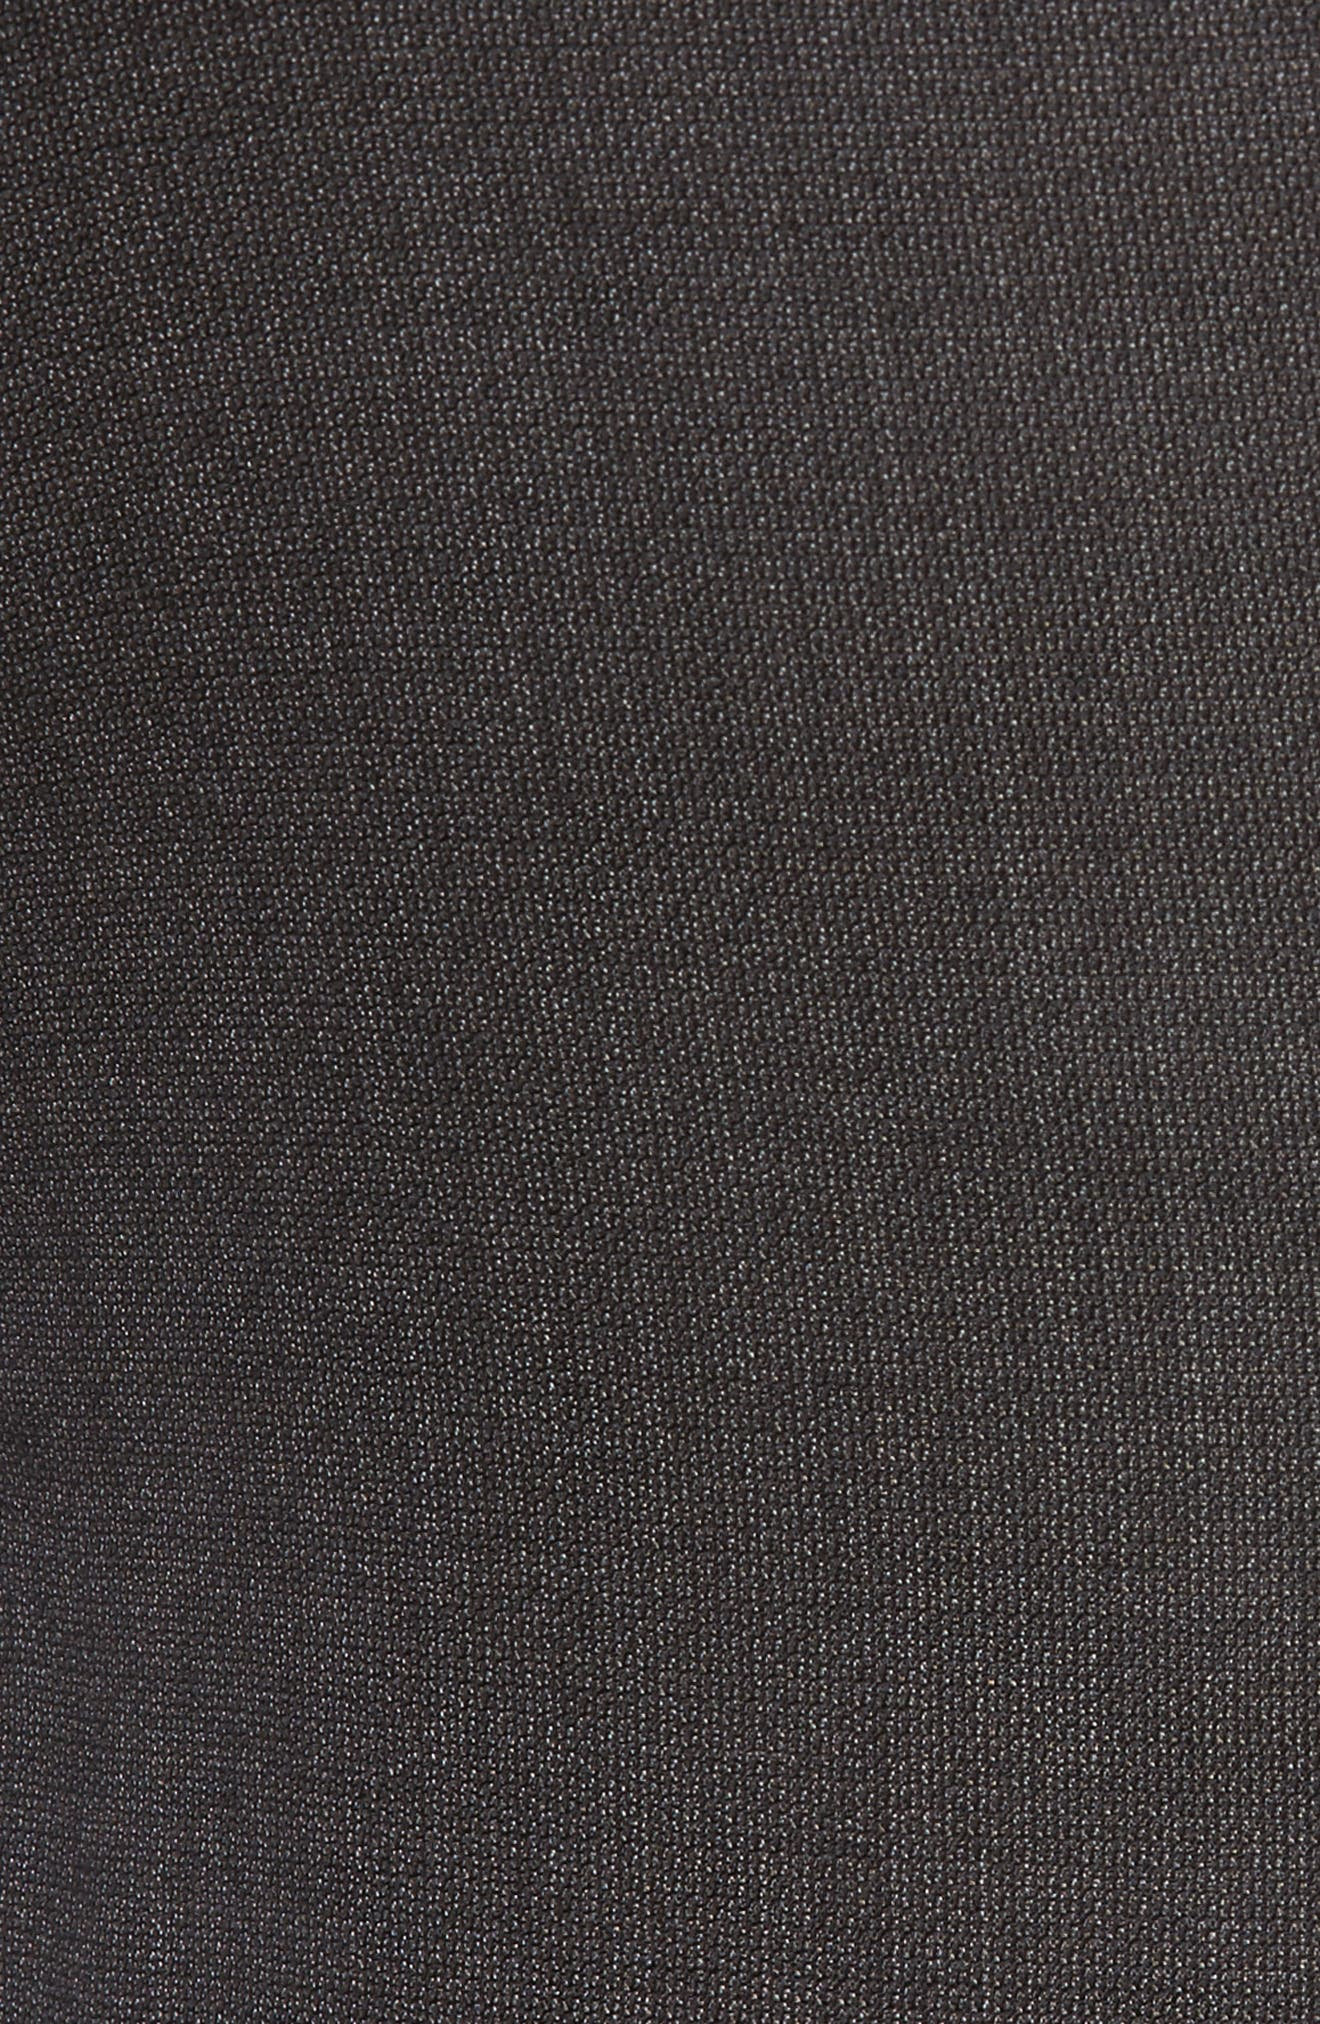 Classic Fit Micro Weave Wool Suit,                             Alternate thumbnail 7, color,                             200